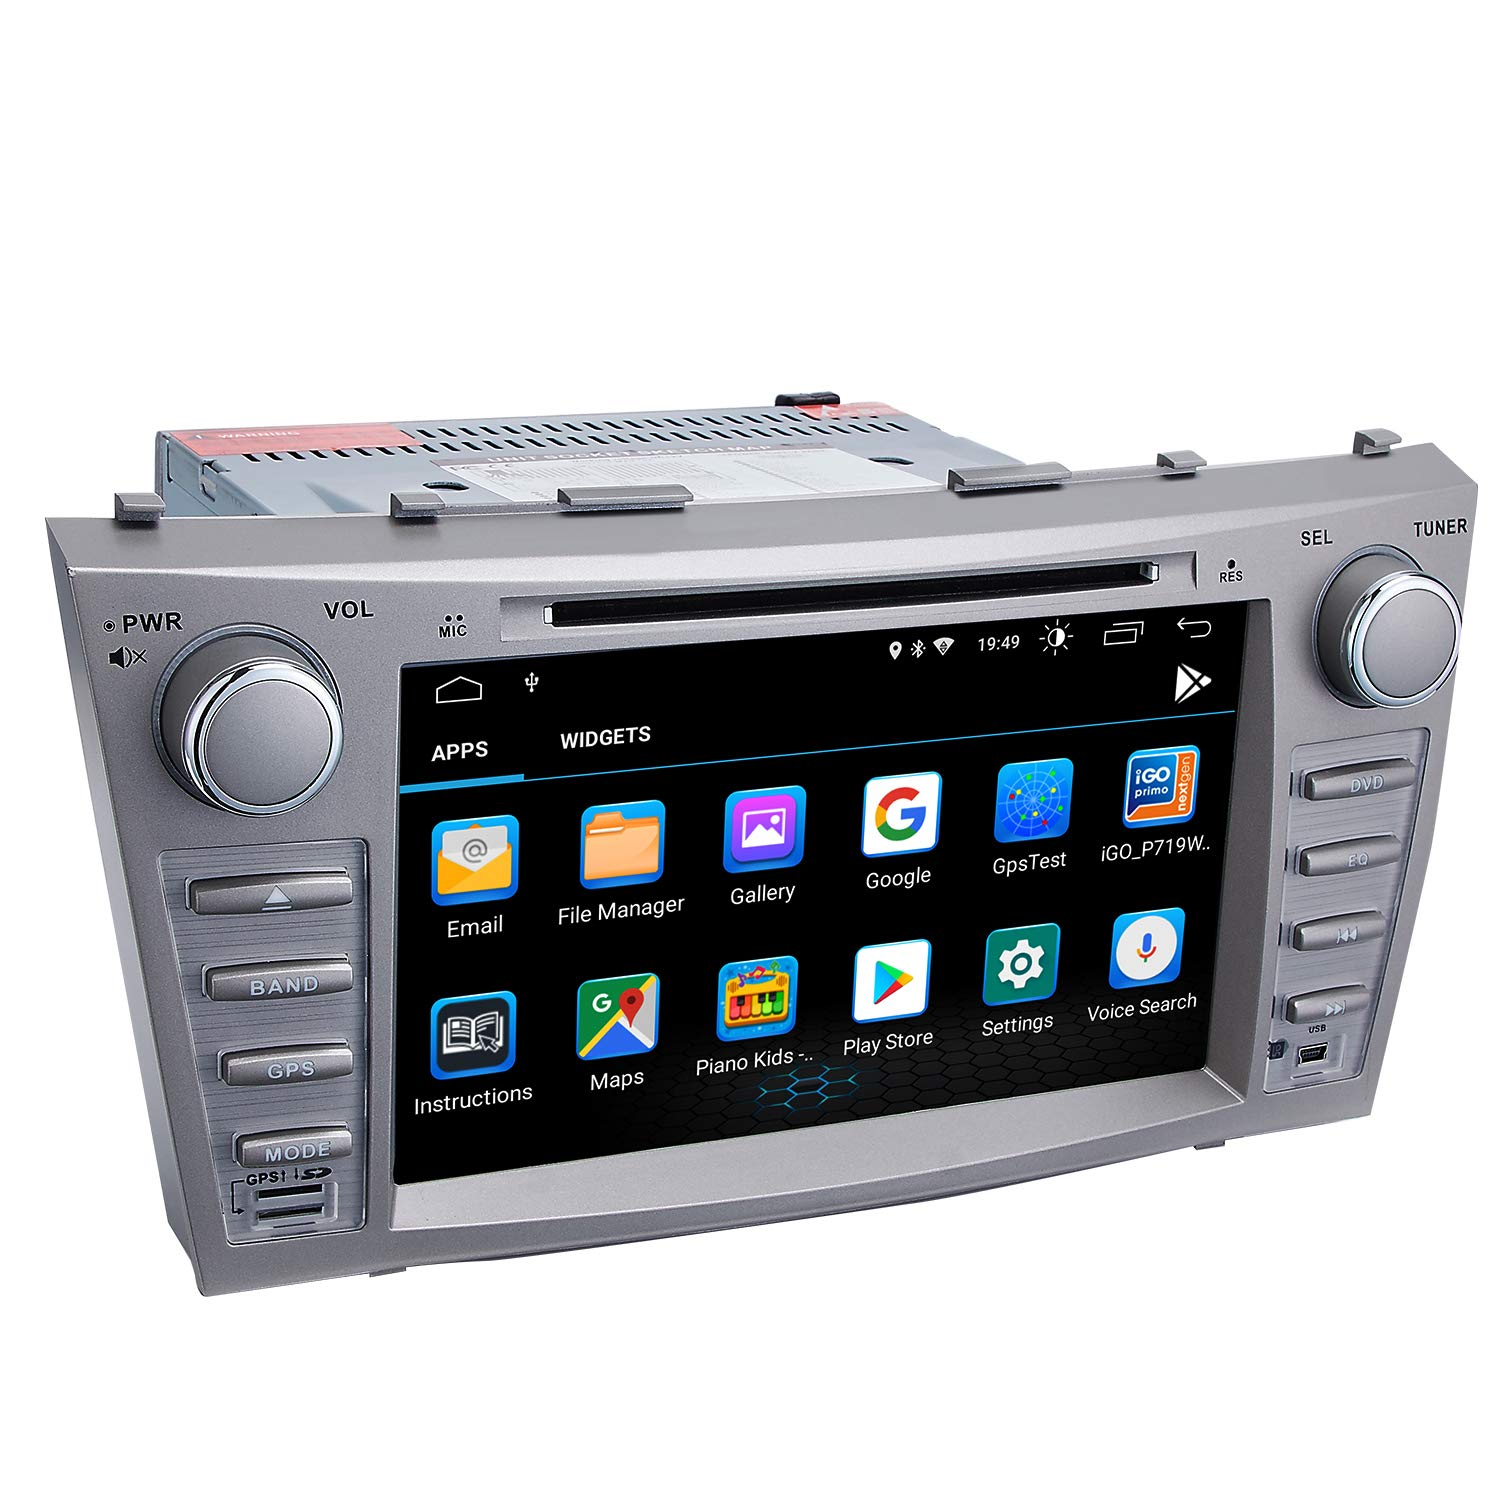 Camry Car Stereo DVD Player-Double Din in-Dash, Multimedia Receiver with Touchscreen, Built-in Bluetooth, MP3 Player, GPS Navigation, SD, AUX Input, Radio Receiver (Android 9.0) by Dagiton